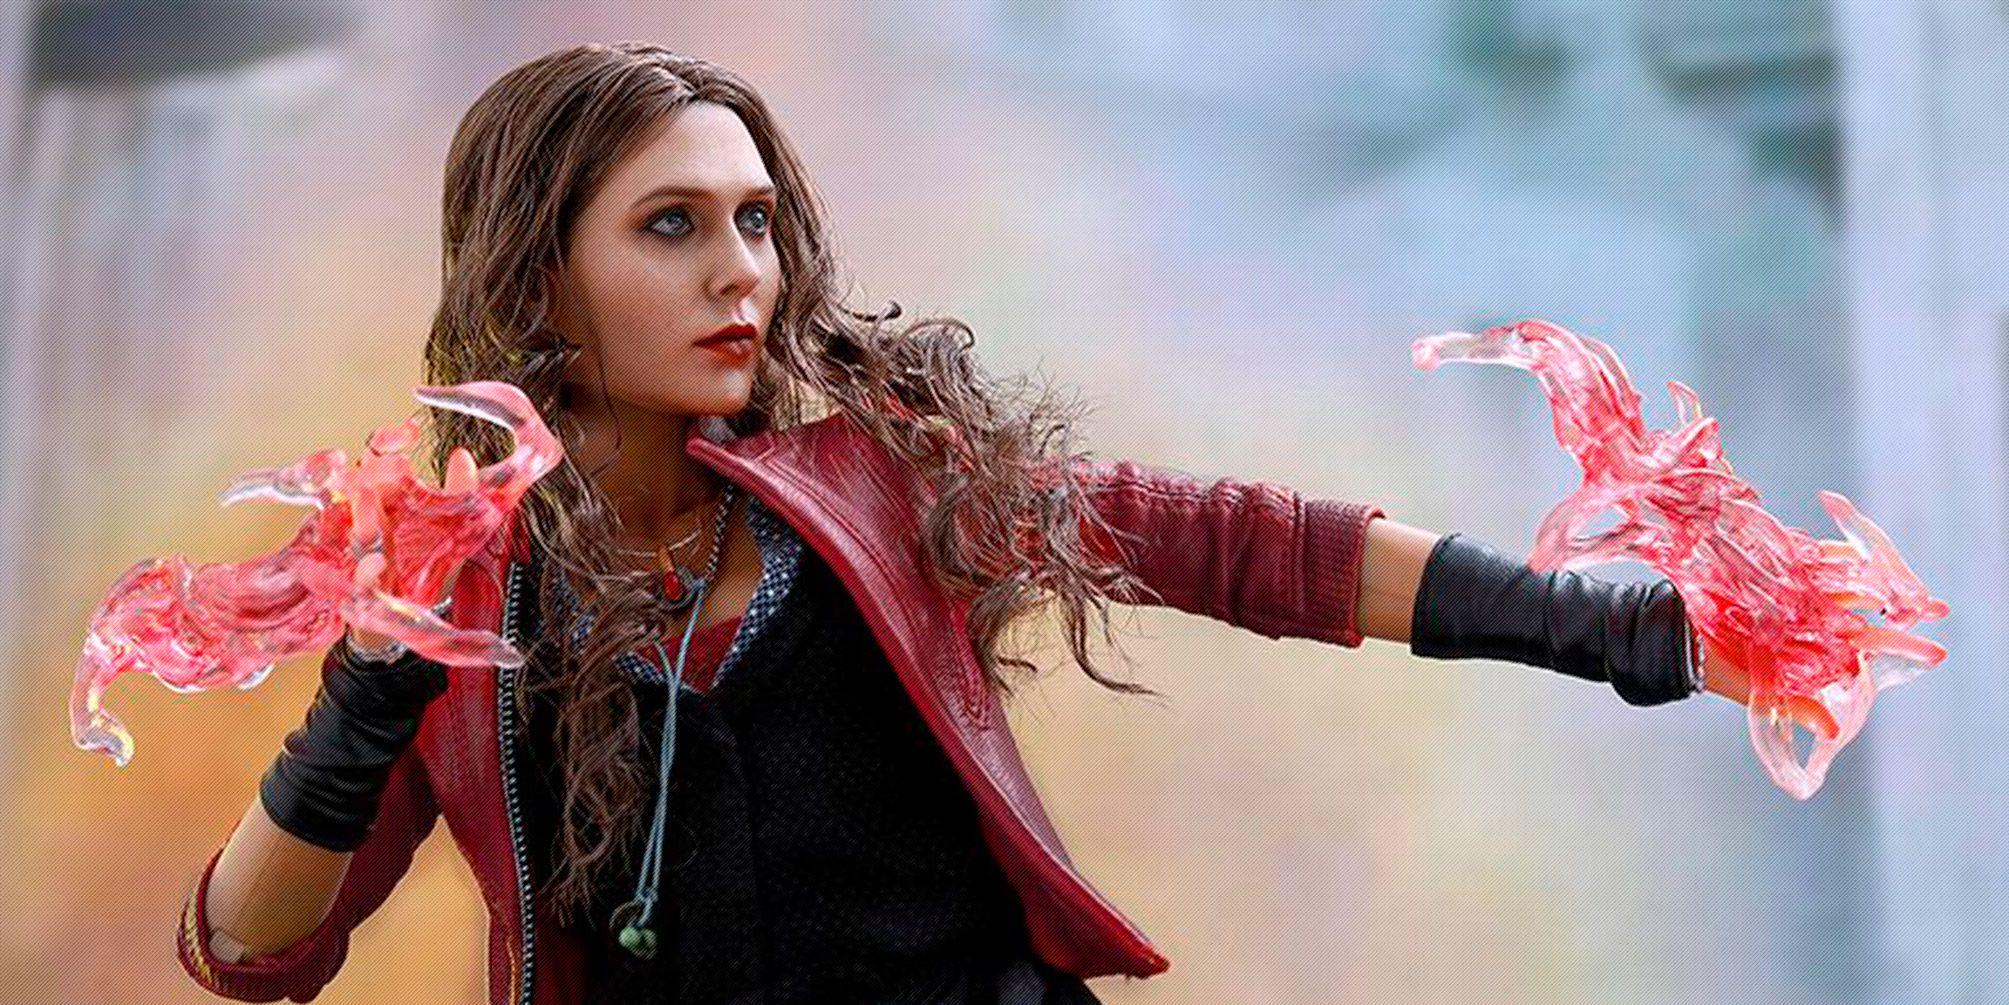 Elizabeth Olsen Avengers Wallpapers Desktop For Iphone Wallpaper HD